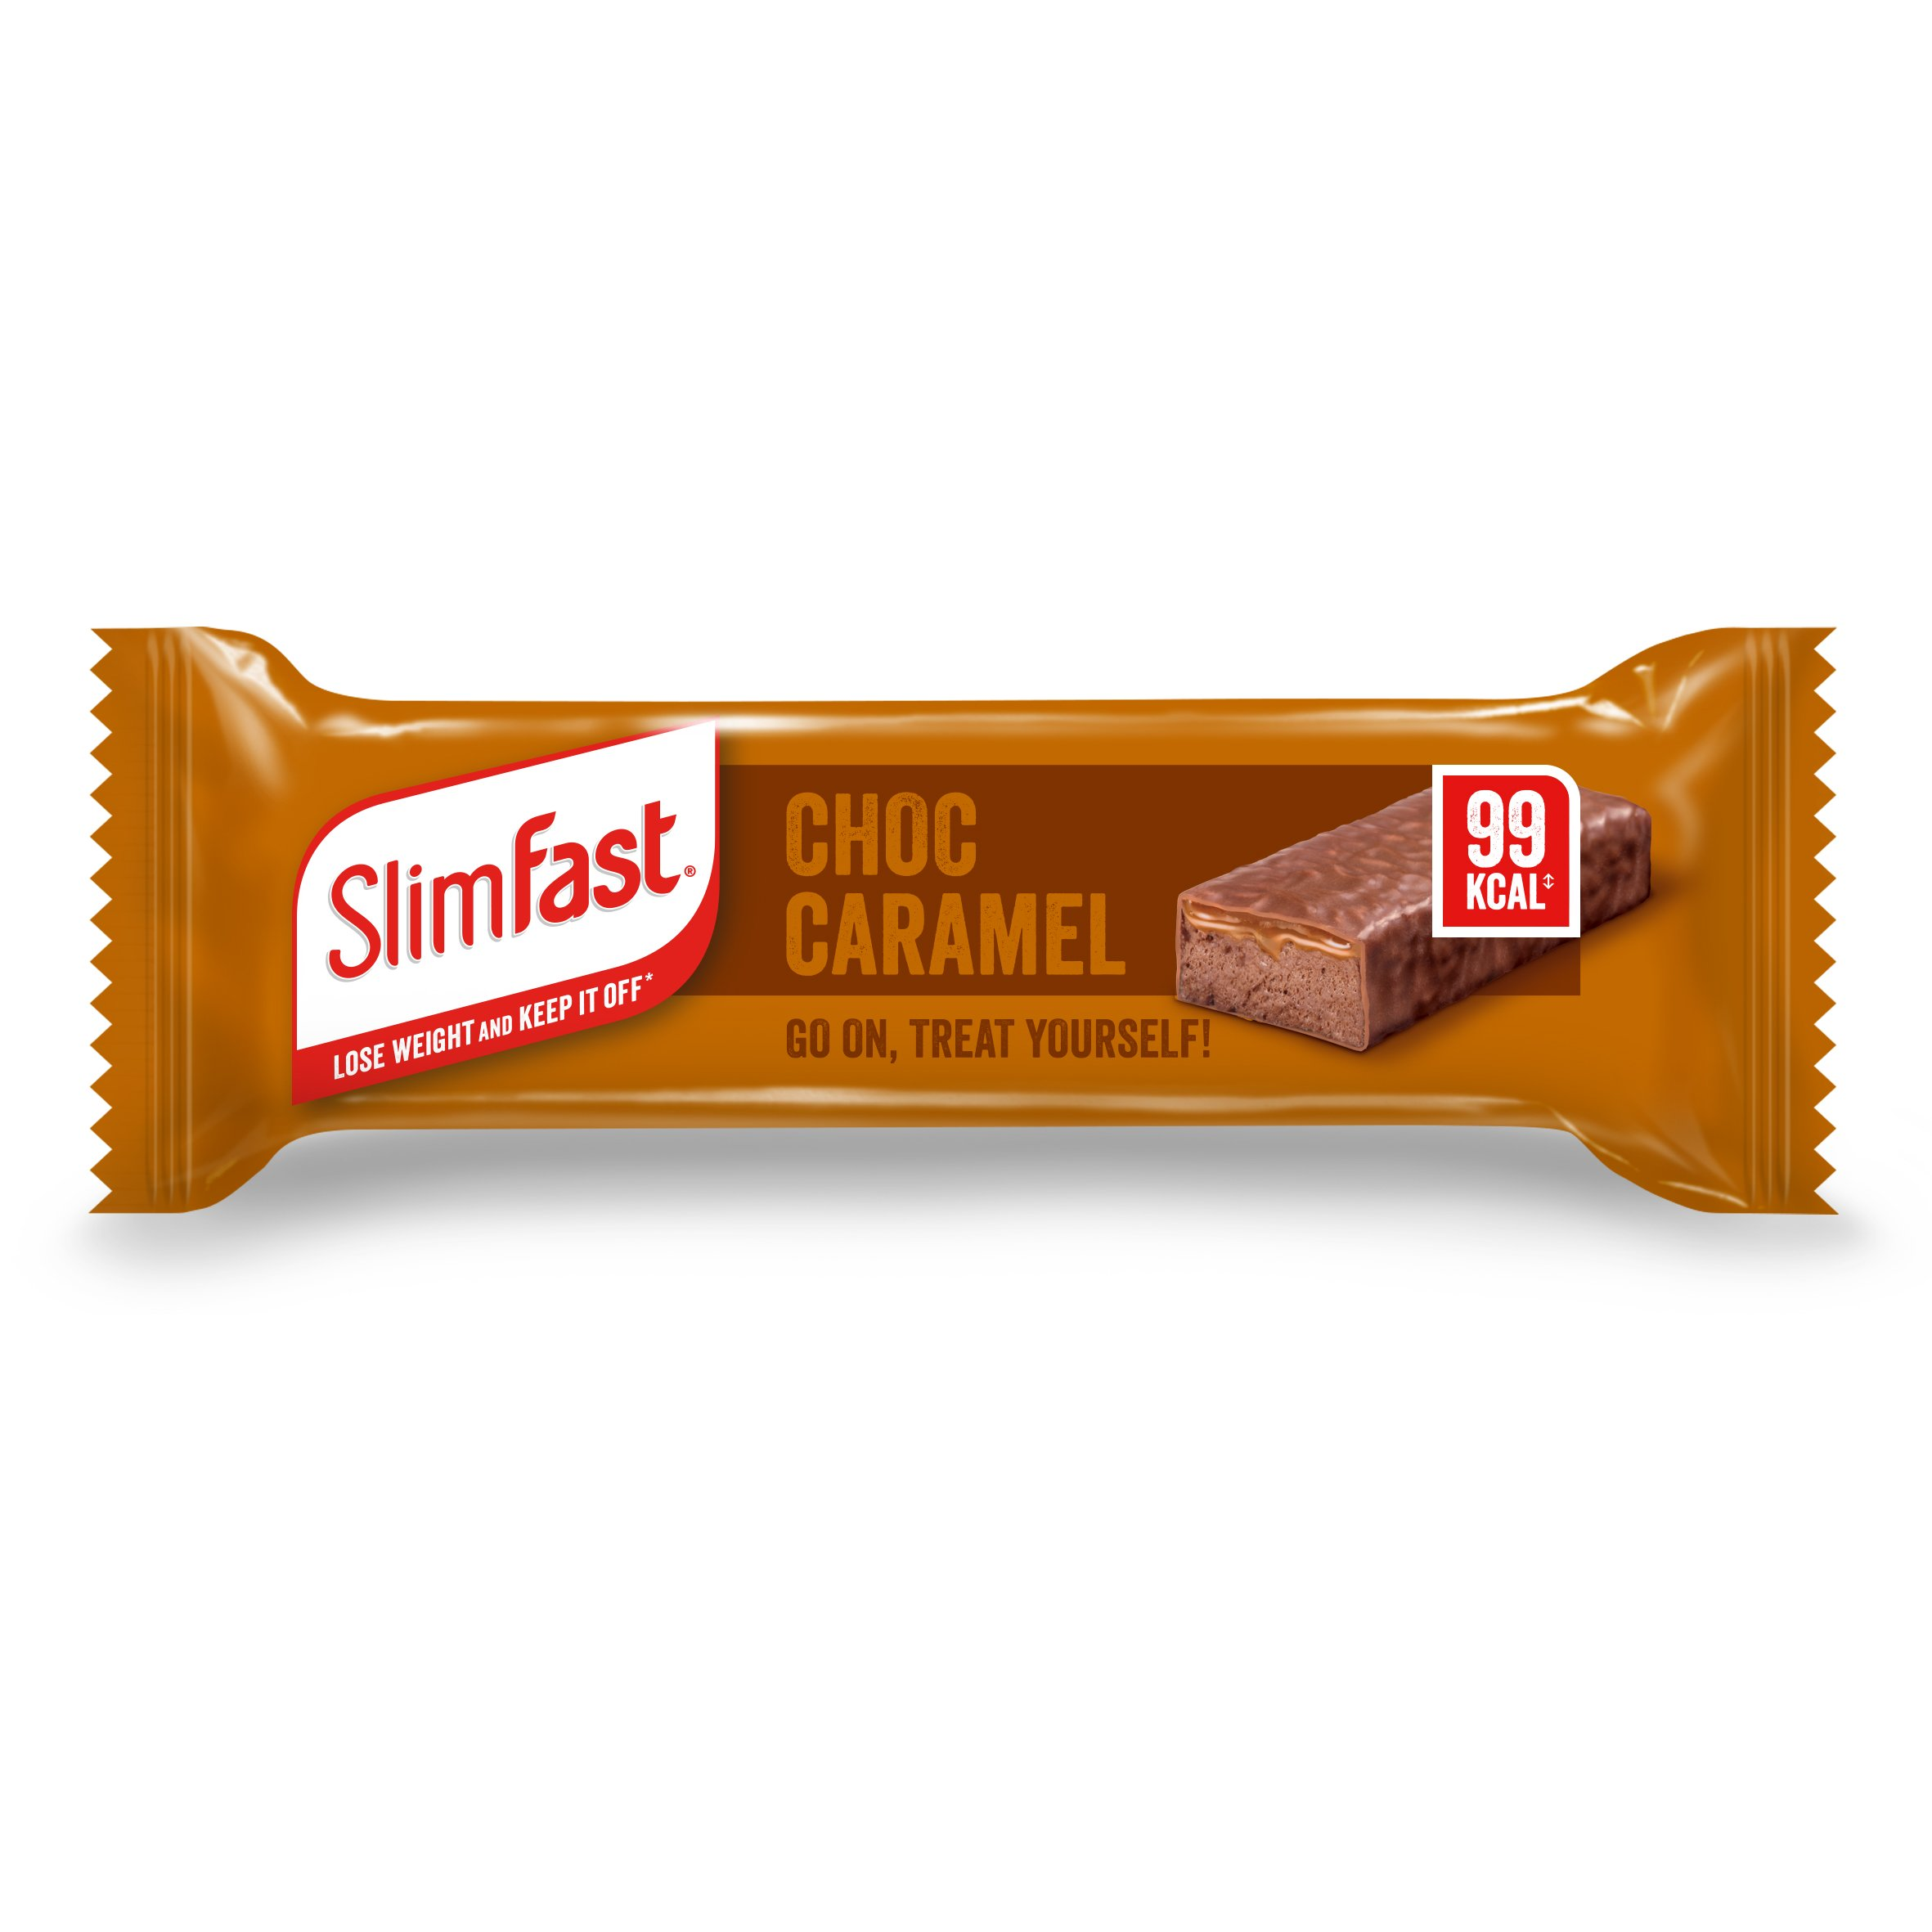 Choc Caramel Snack Bar